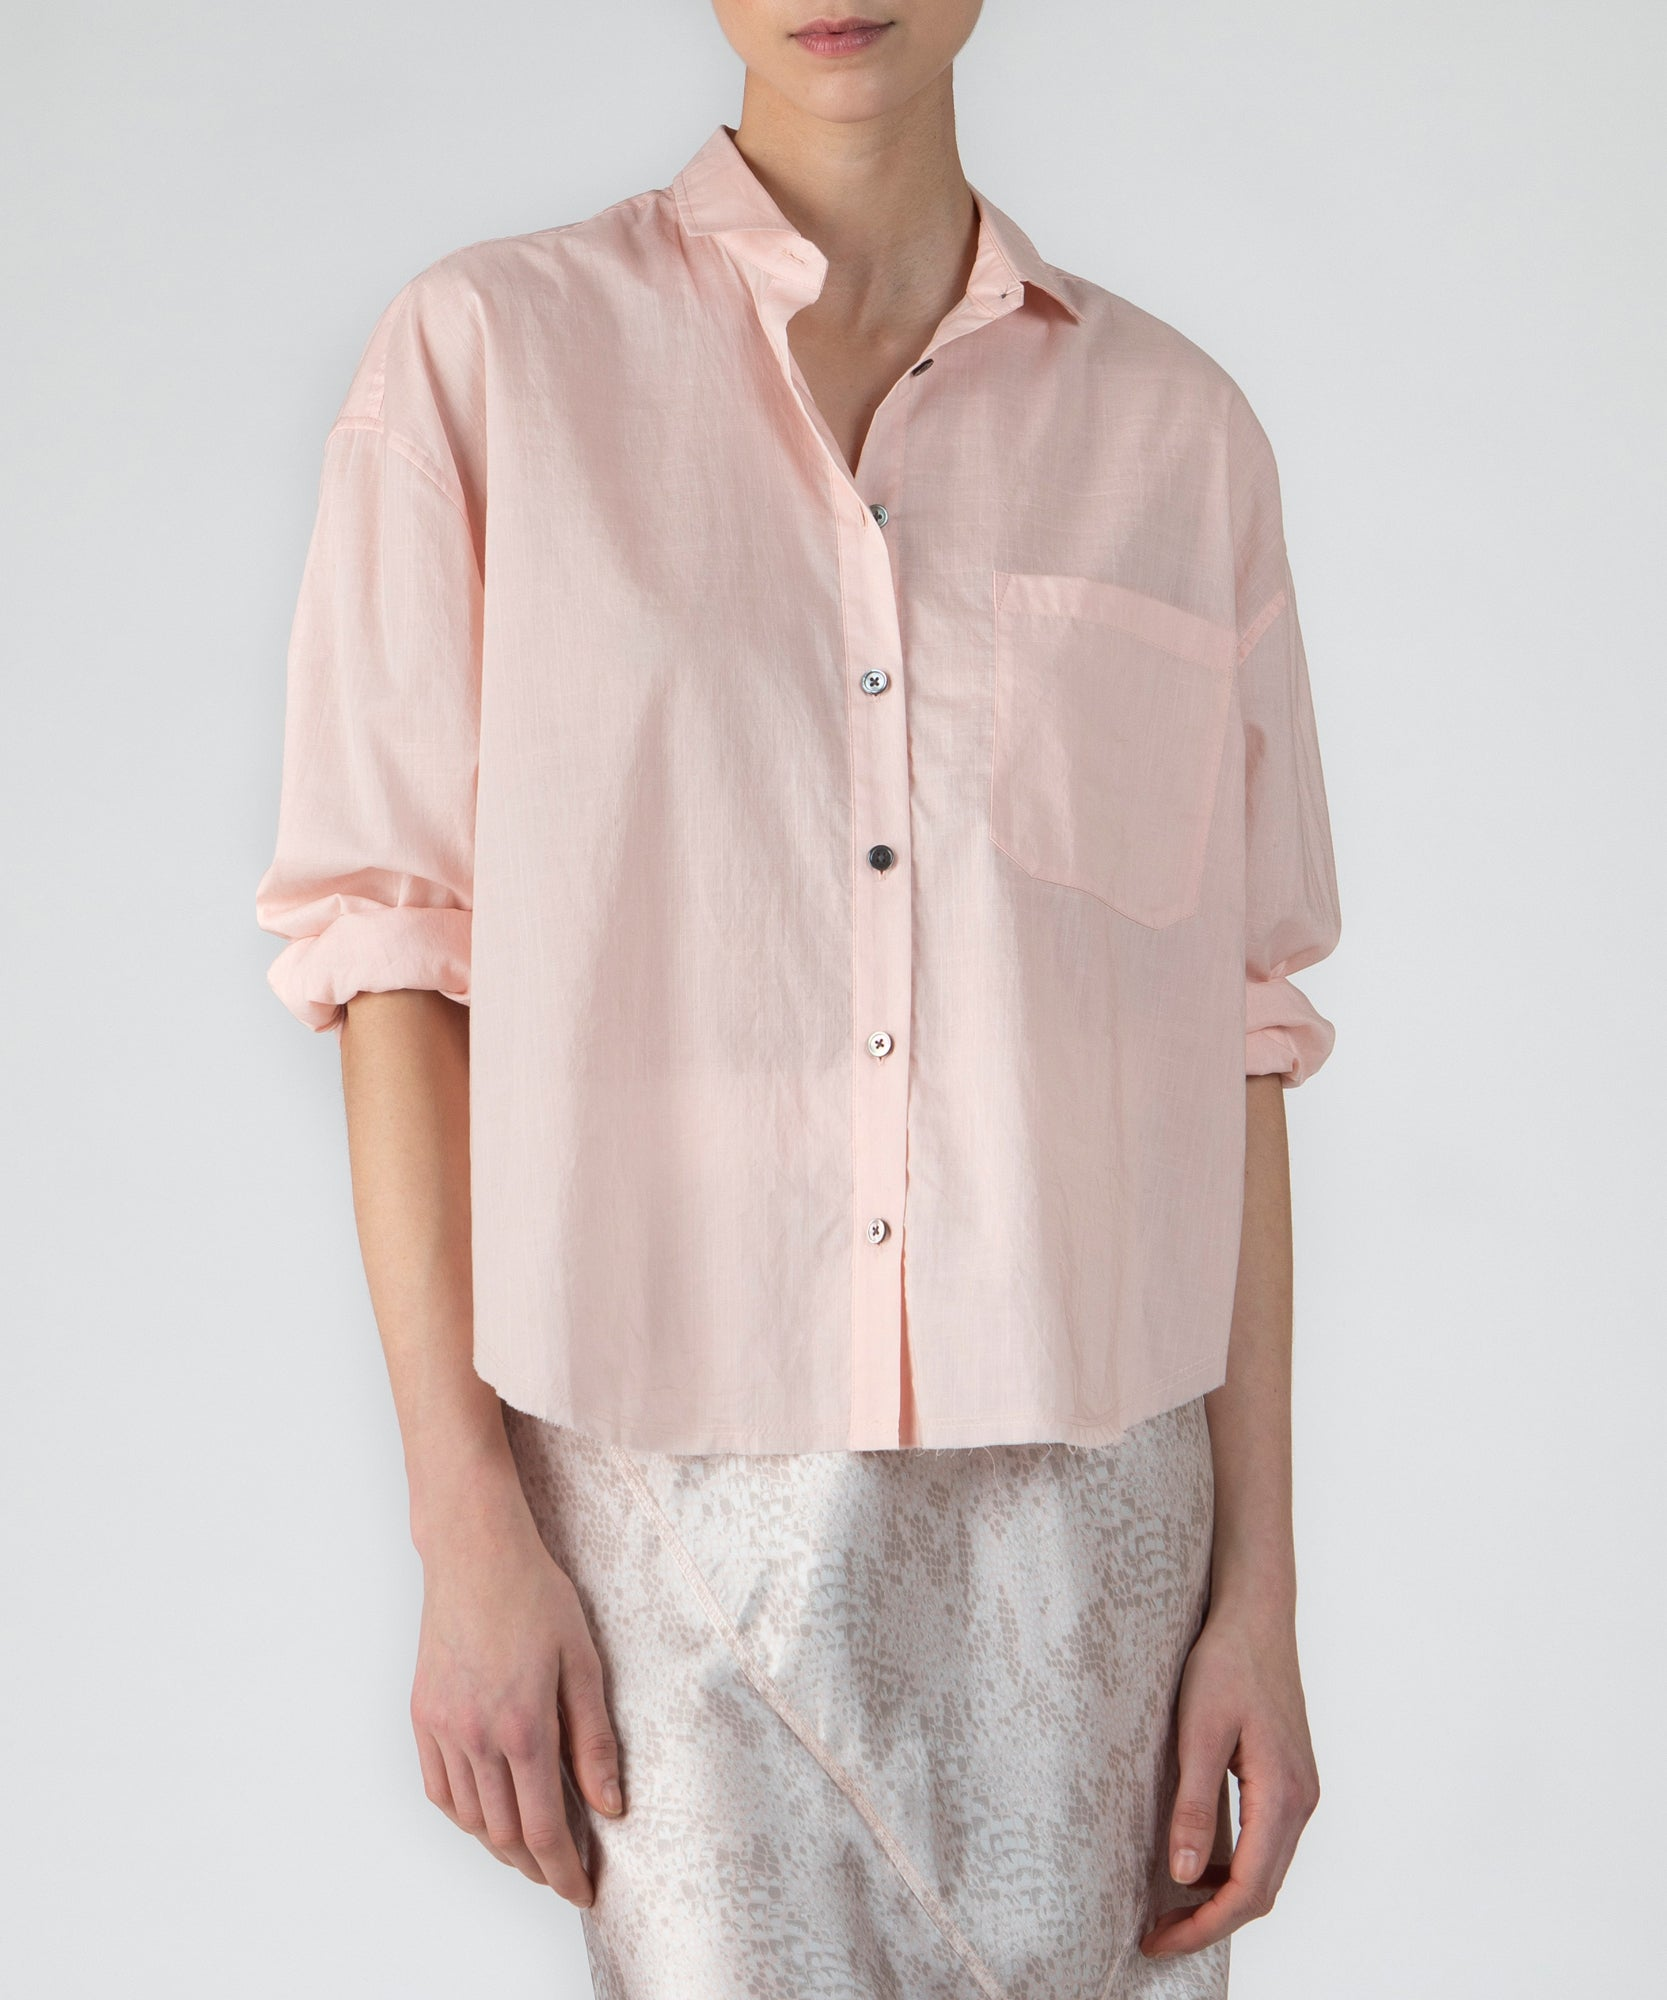 Pale Pink Cotton Crosshatch Button Down Shirt - Women's Button Down Shirt by ATM Anthony Thomas Melillo